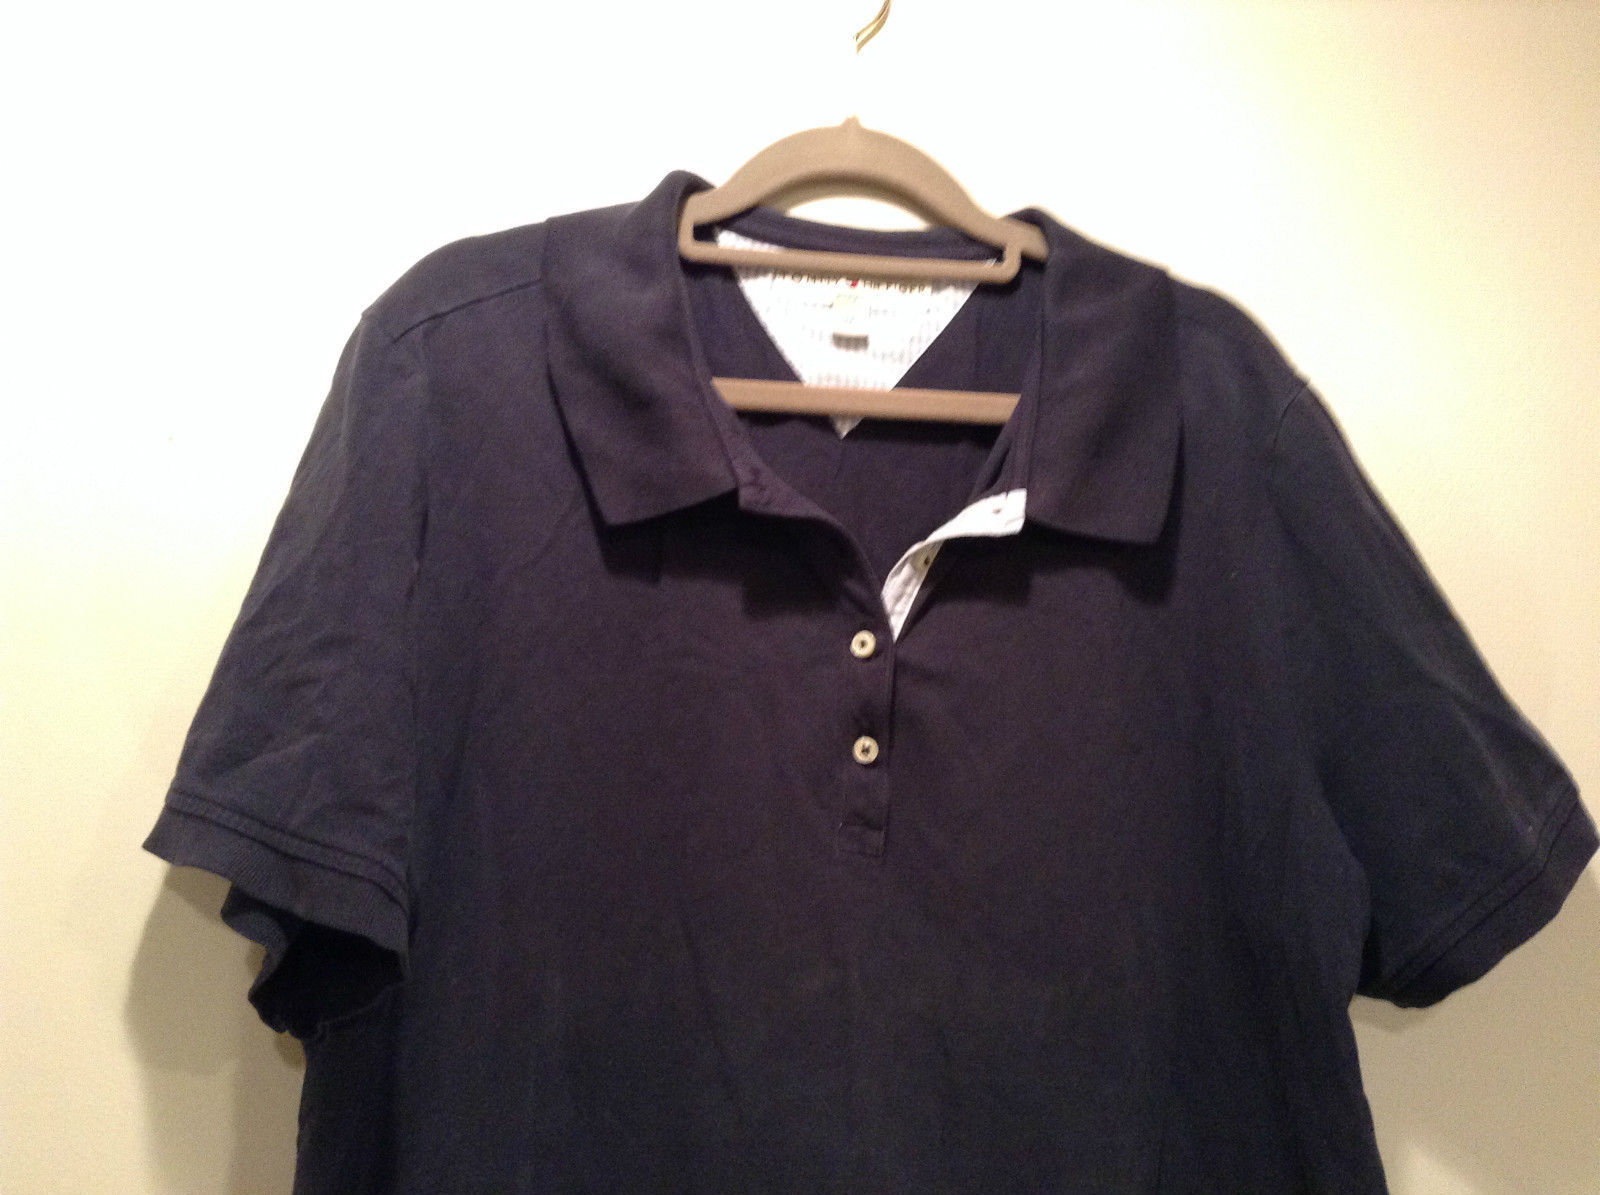 Dark Blue Short Sleeve Cotton Blend Tommy Hilfiger Polo Shirt Size 2X